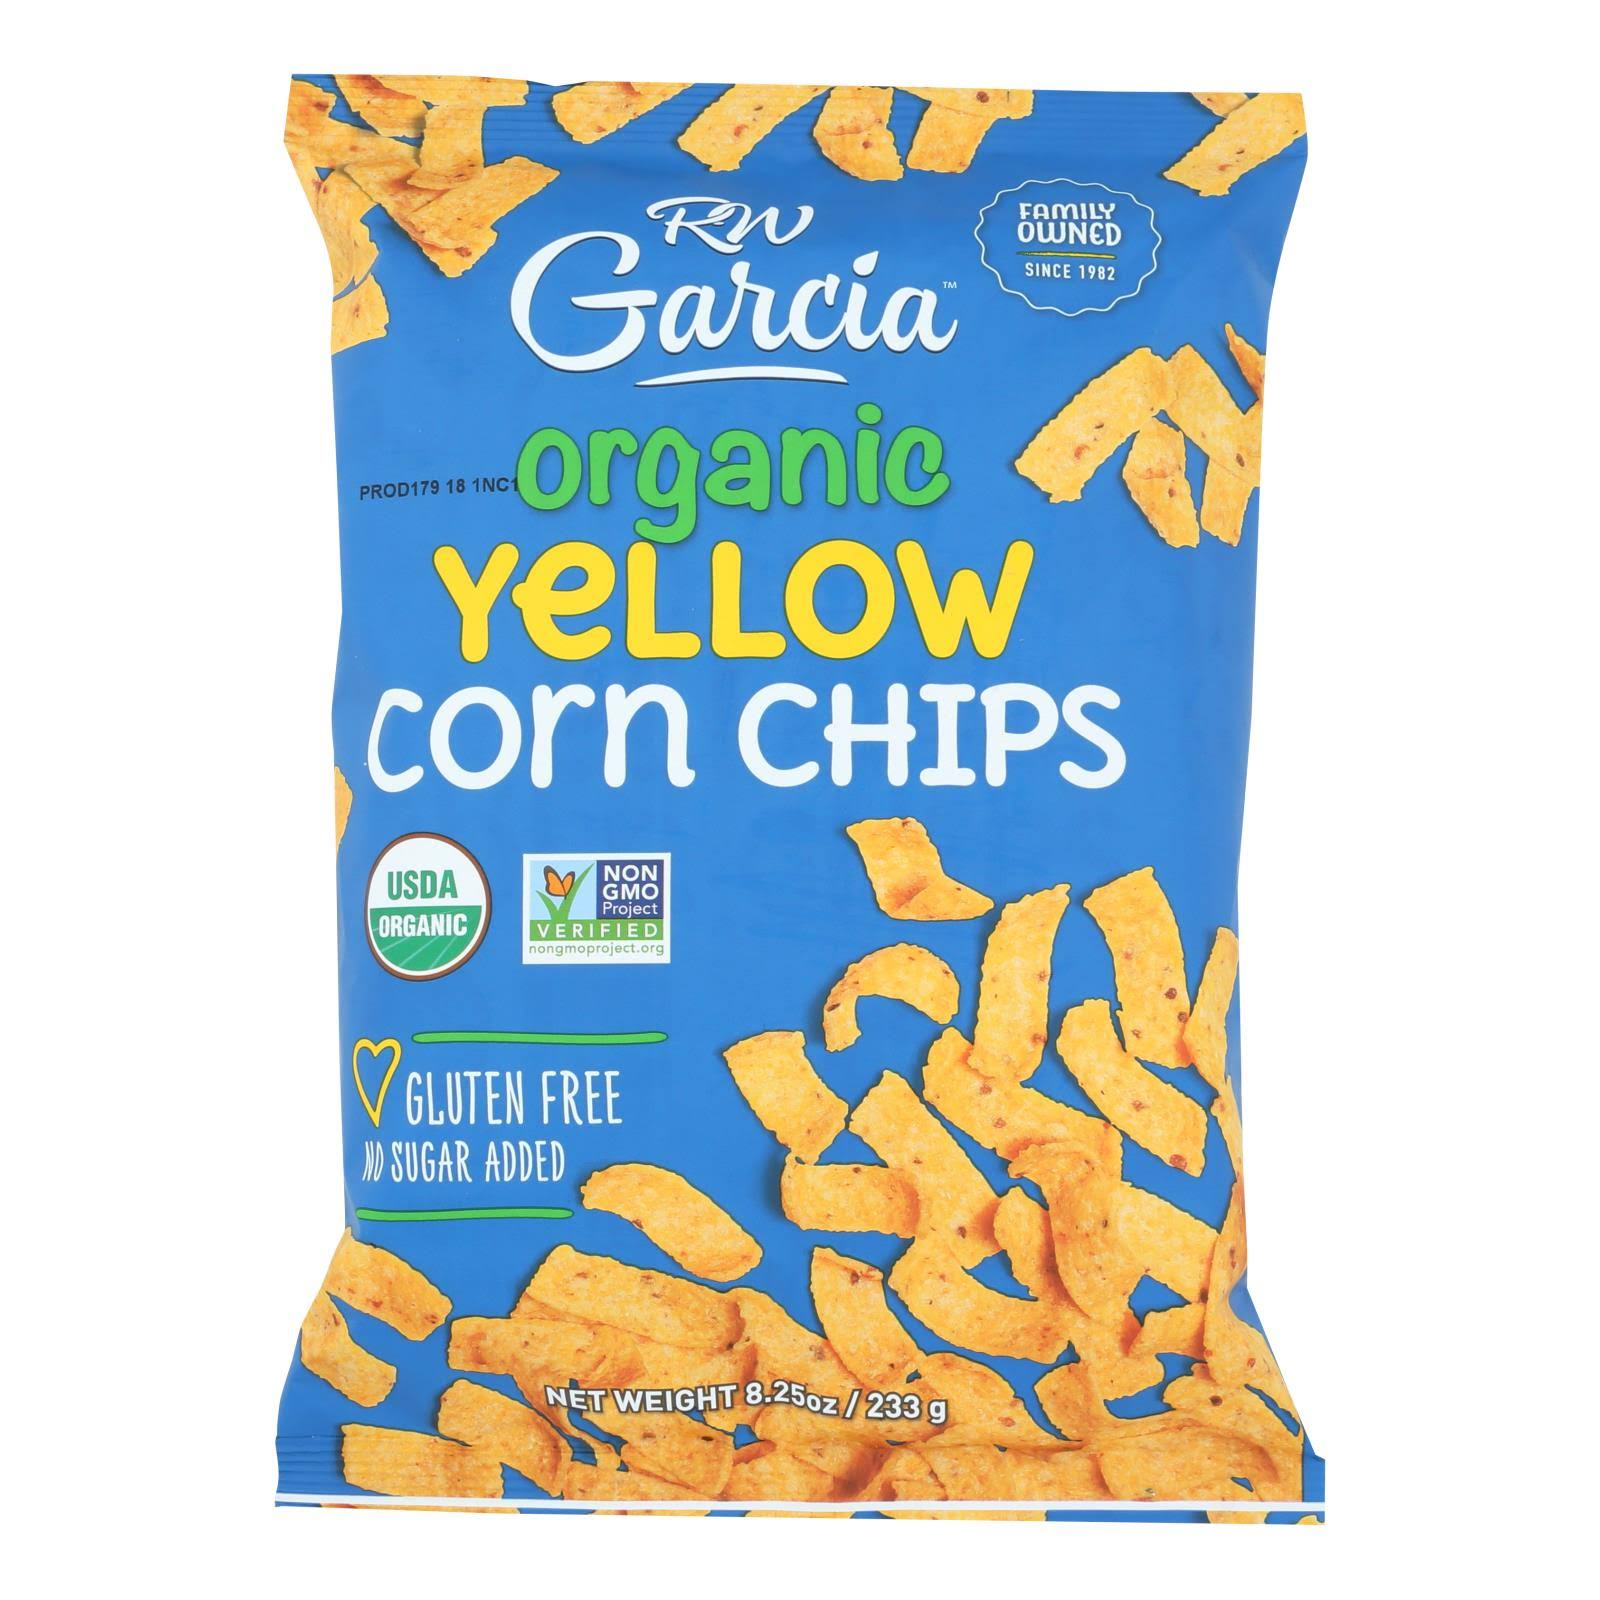 RW Garcia Organic Corn Chips - Yellow